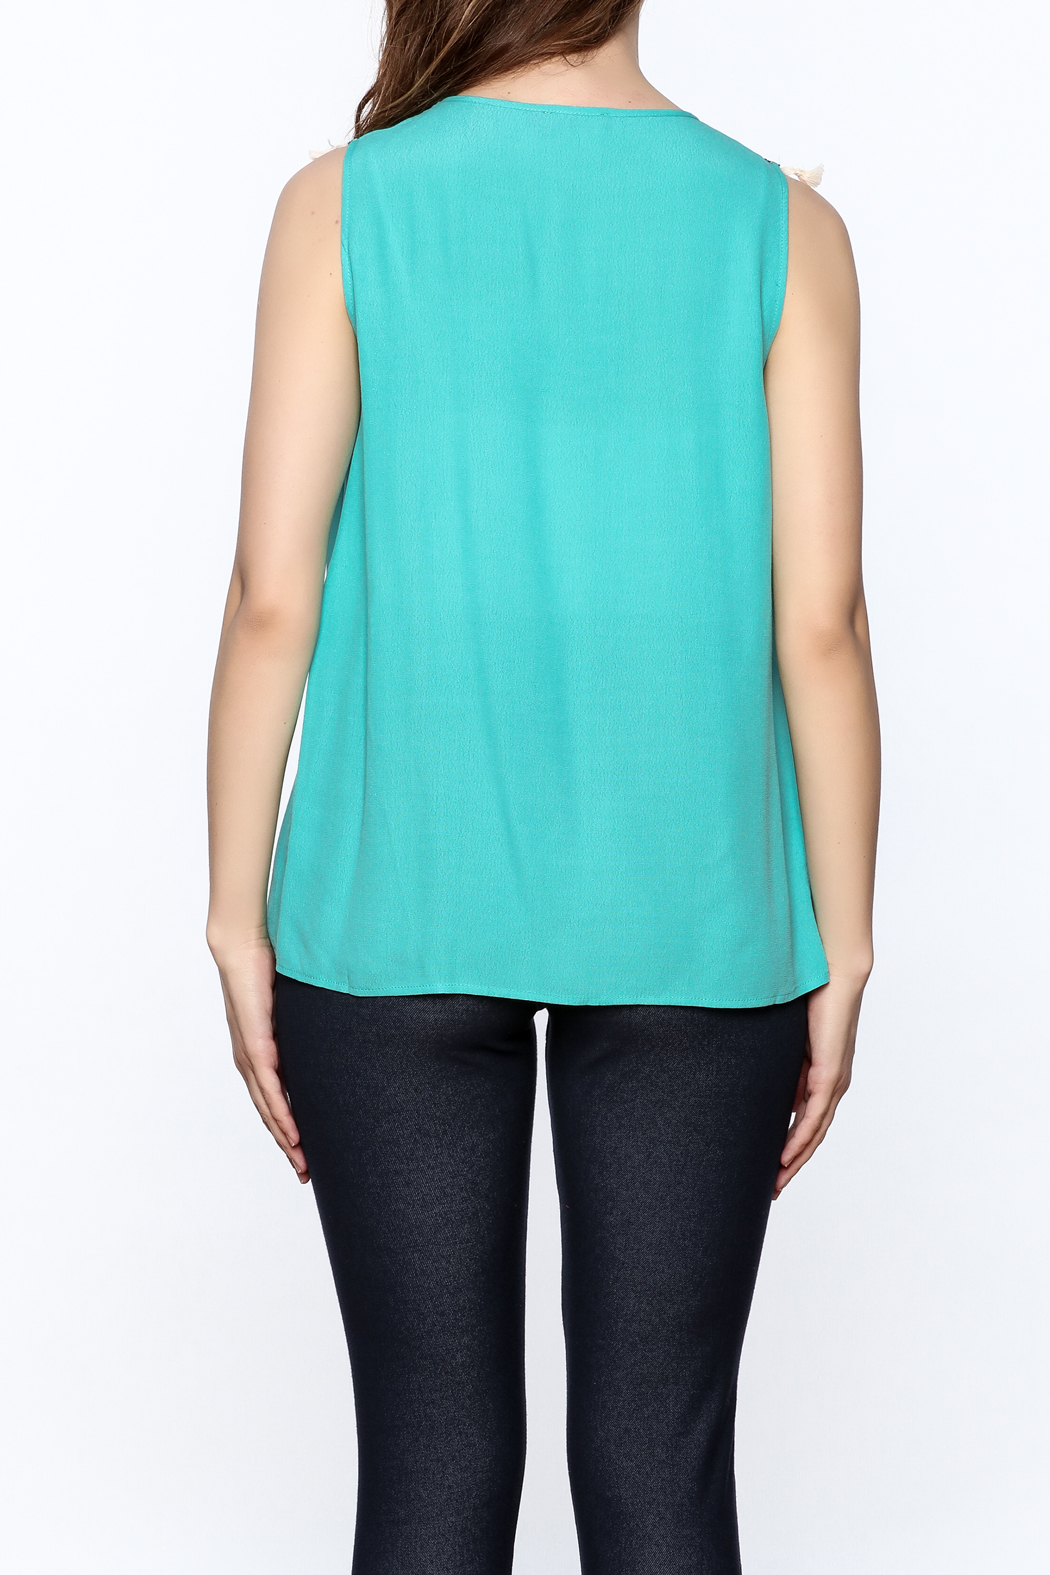 THML Clothing Aqua Tassel Top - Back Cropped Image